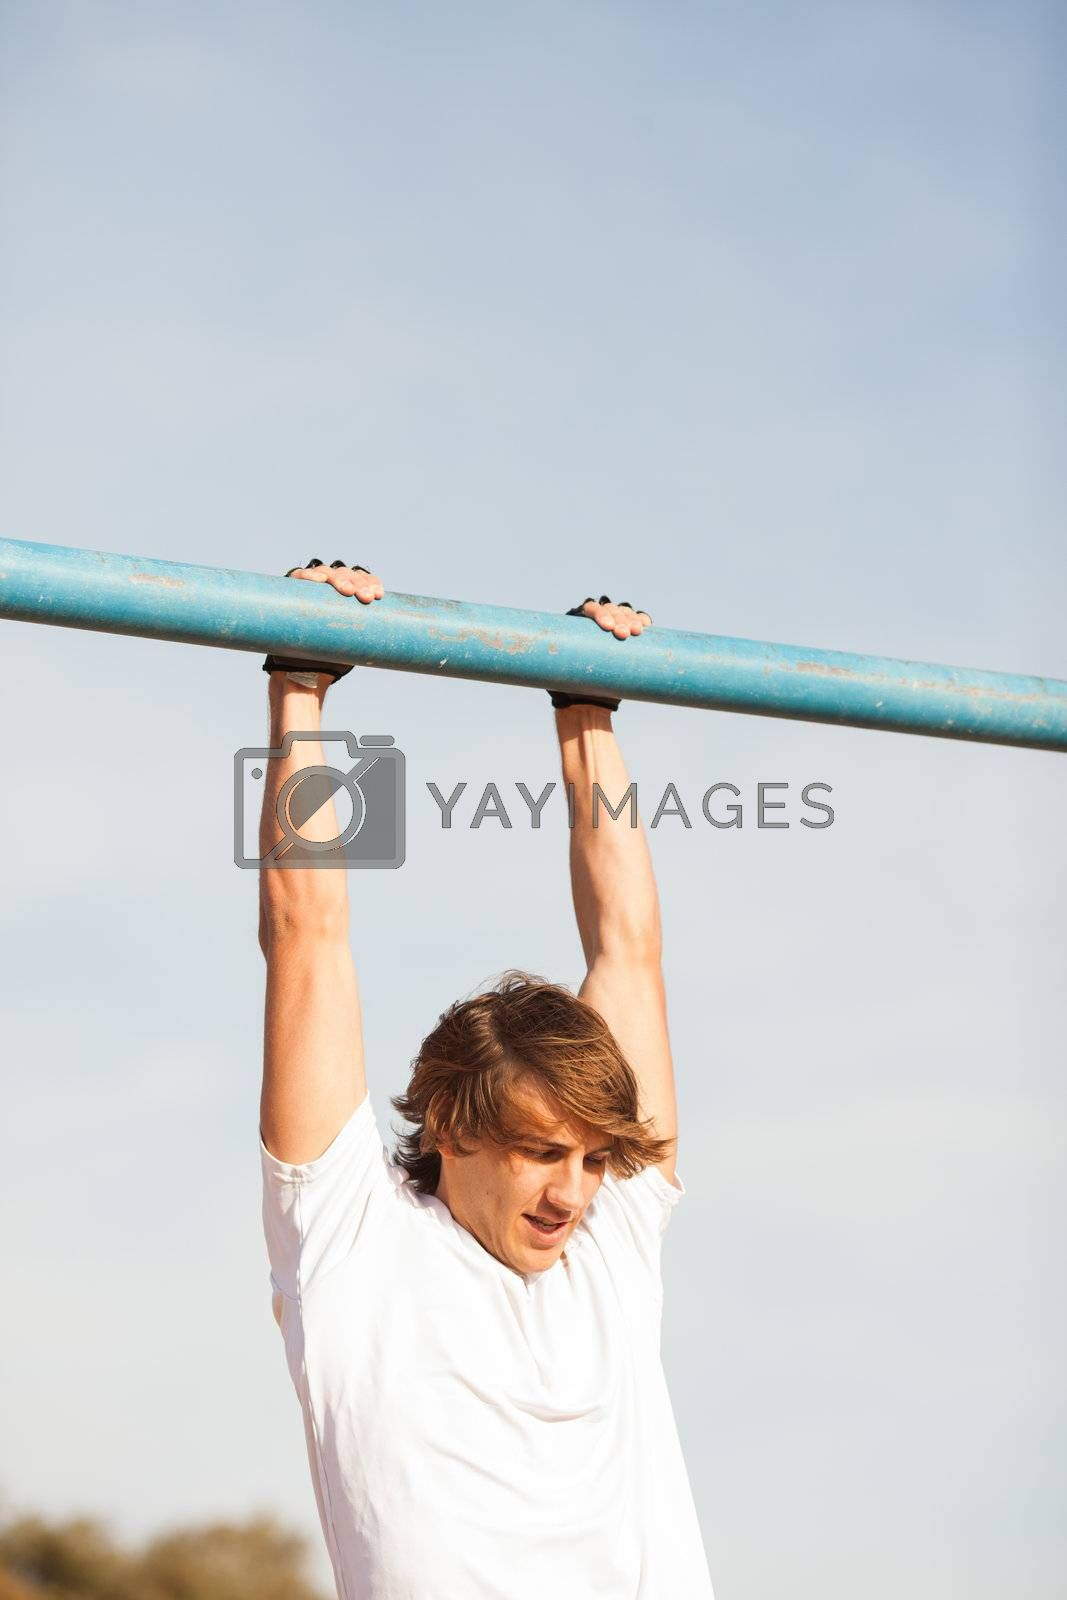 Royalty free image of young healthy man making exercise in a public park by Lcrespi